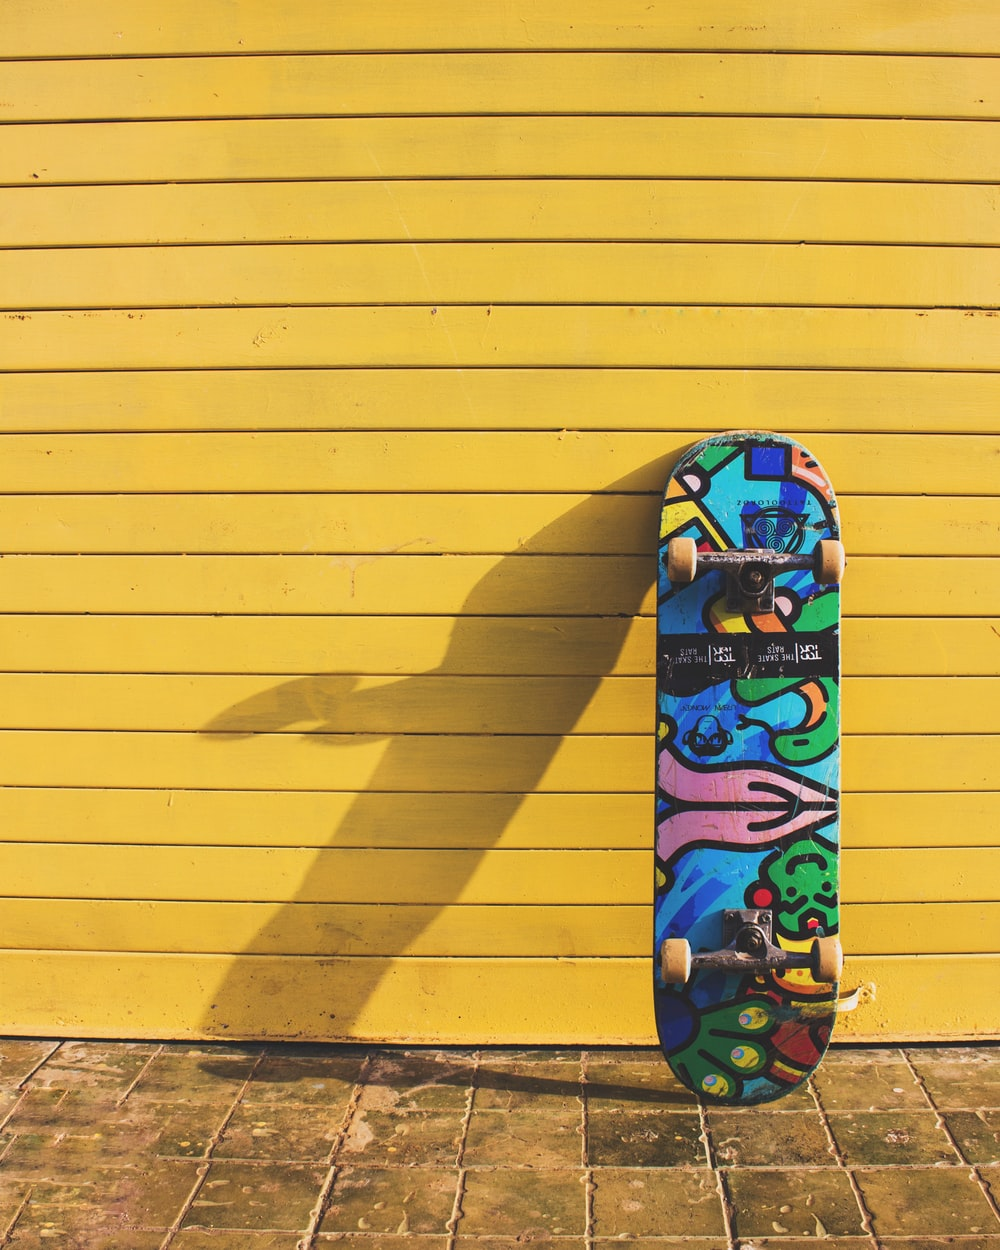 Skateboard Wallpapers Free Hd Download 500 Hq Unsplash